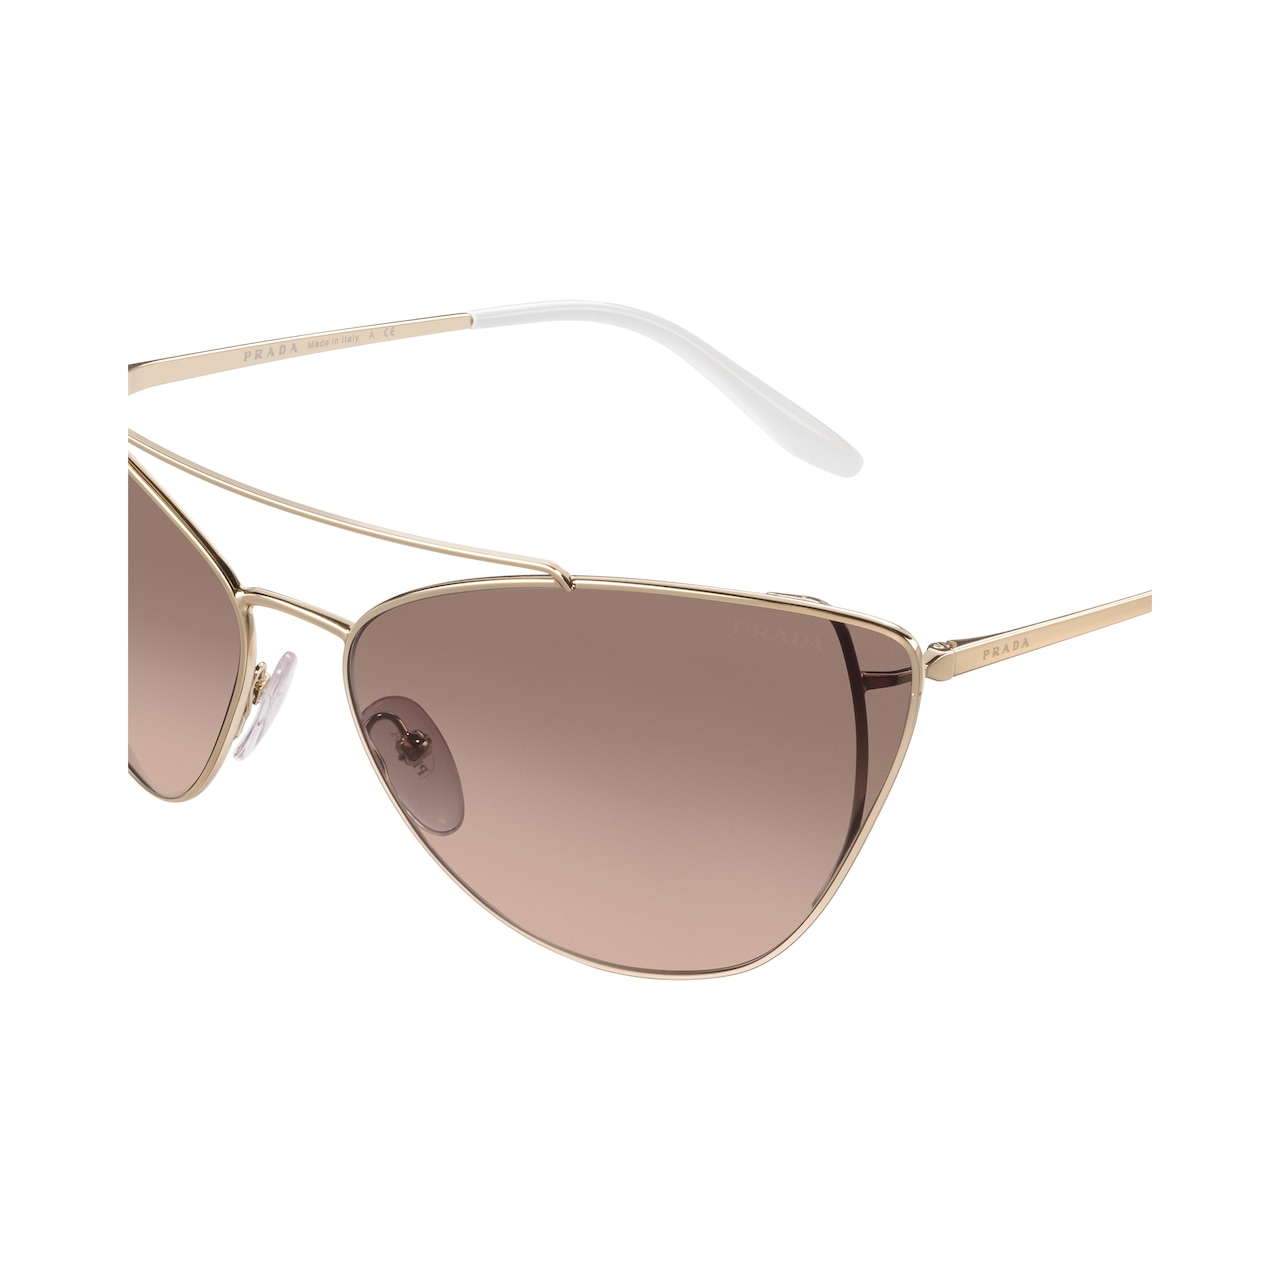 Prada Ultravox sunglasses